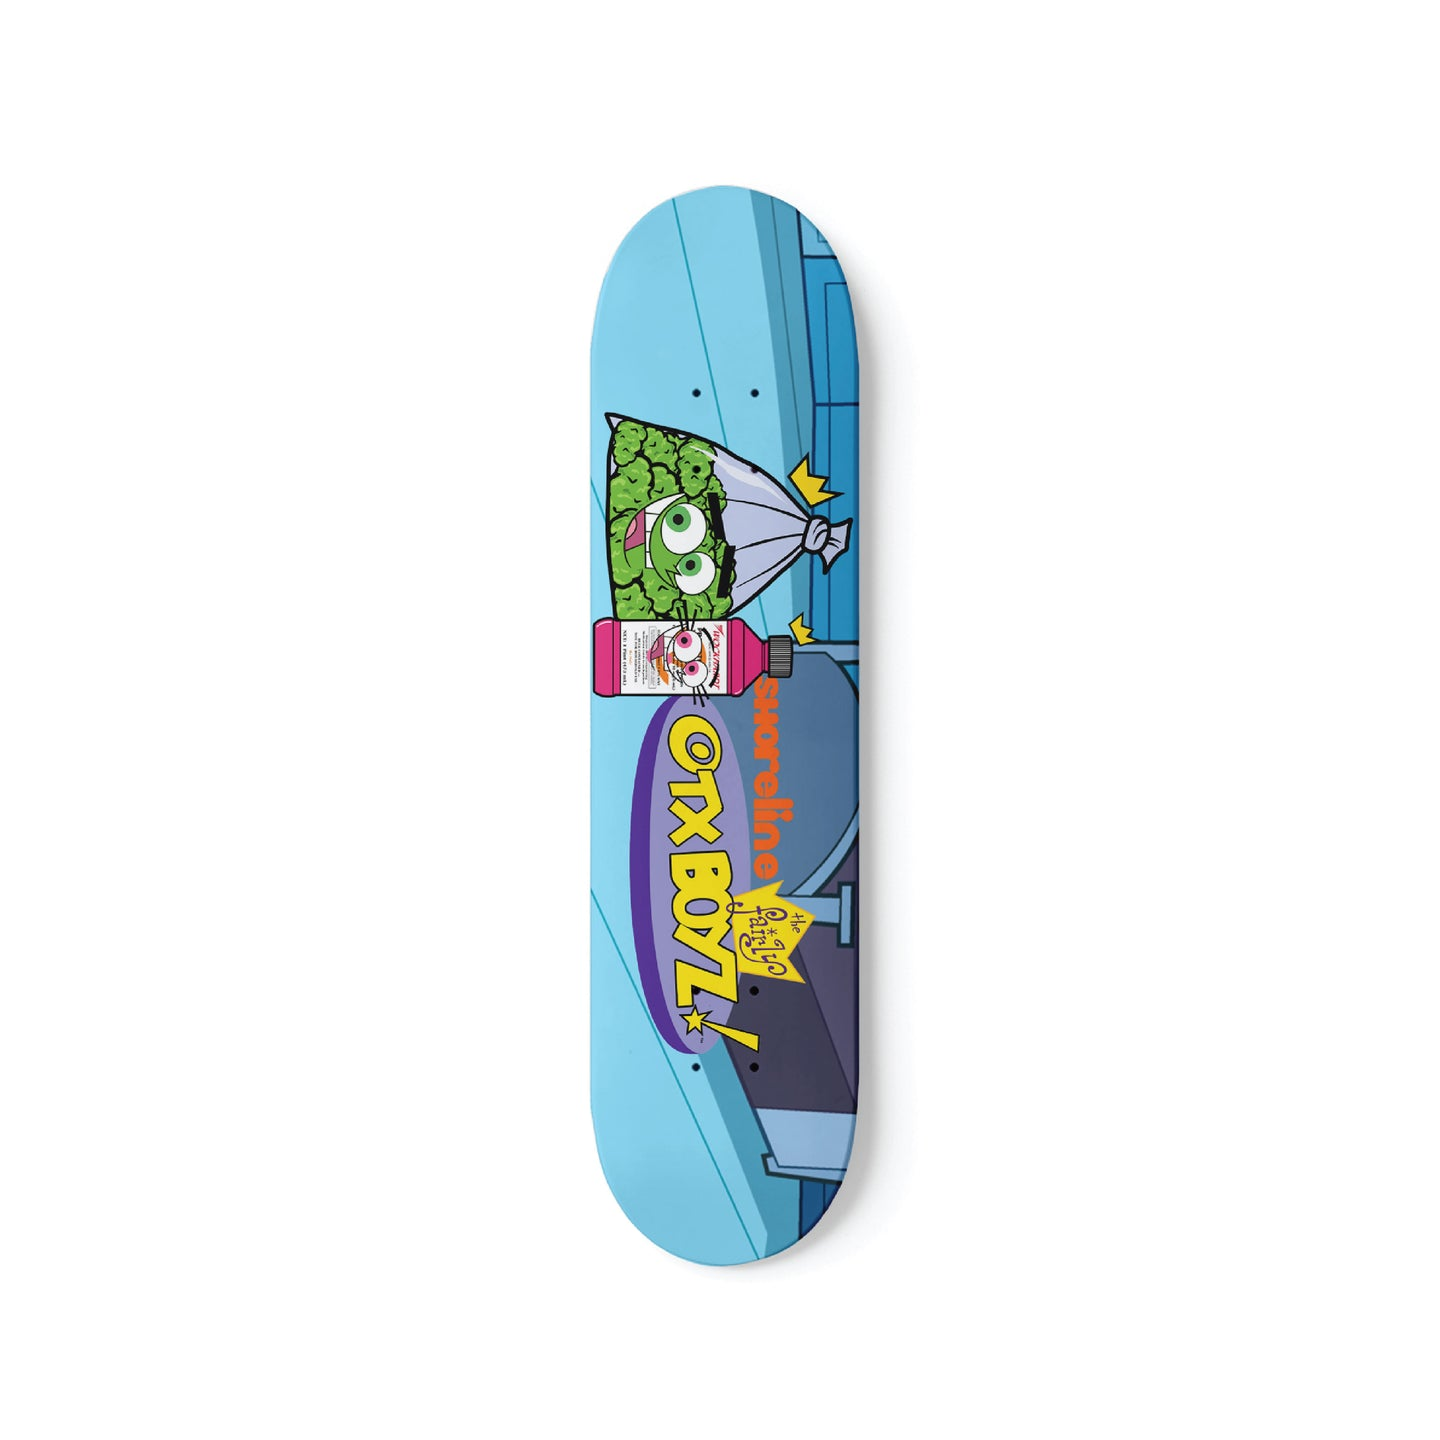 FAIRLY WOCKPARENTZ SKATEBOARD DECK